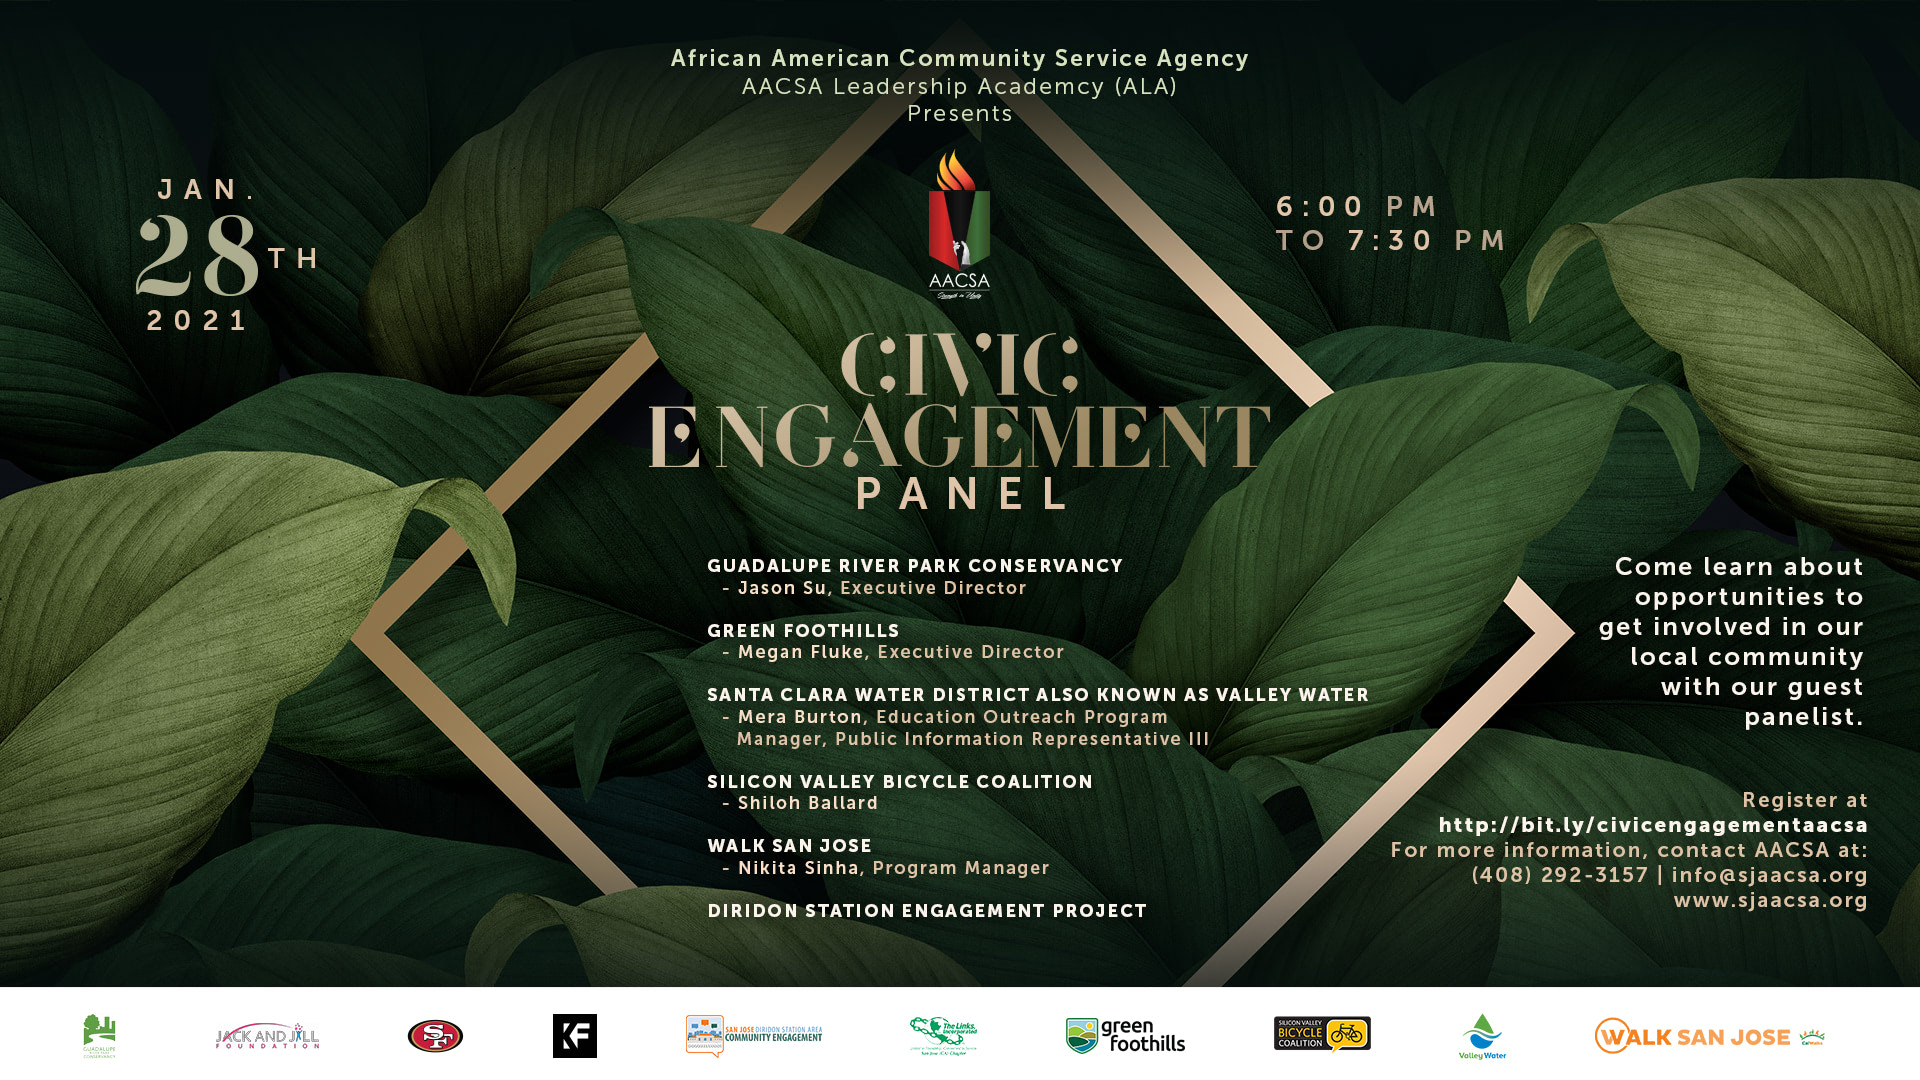 Civic Engagement Panel - Come learn about opportunities to get involved in our local community with our guest panelist.